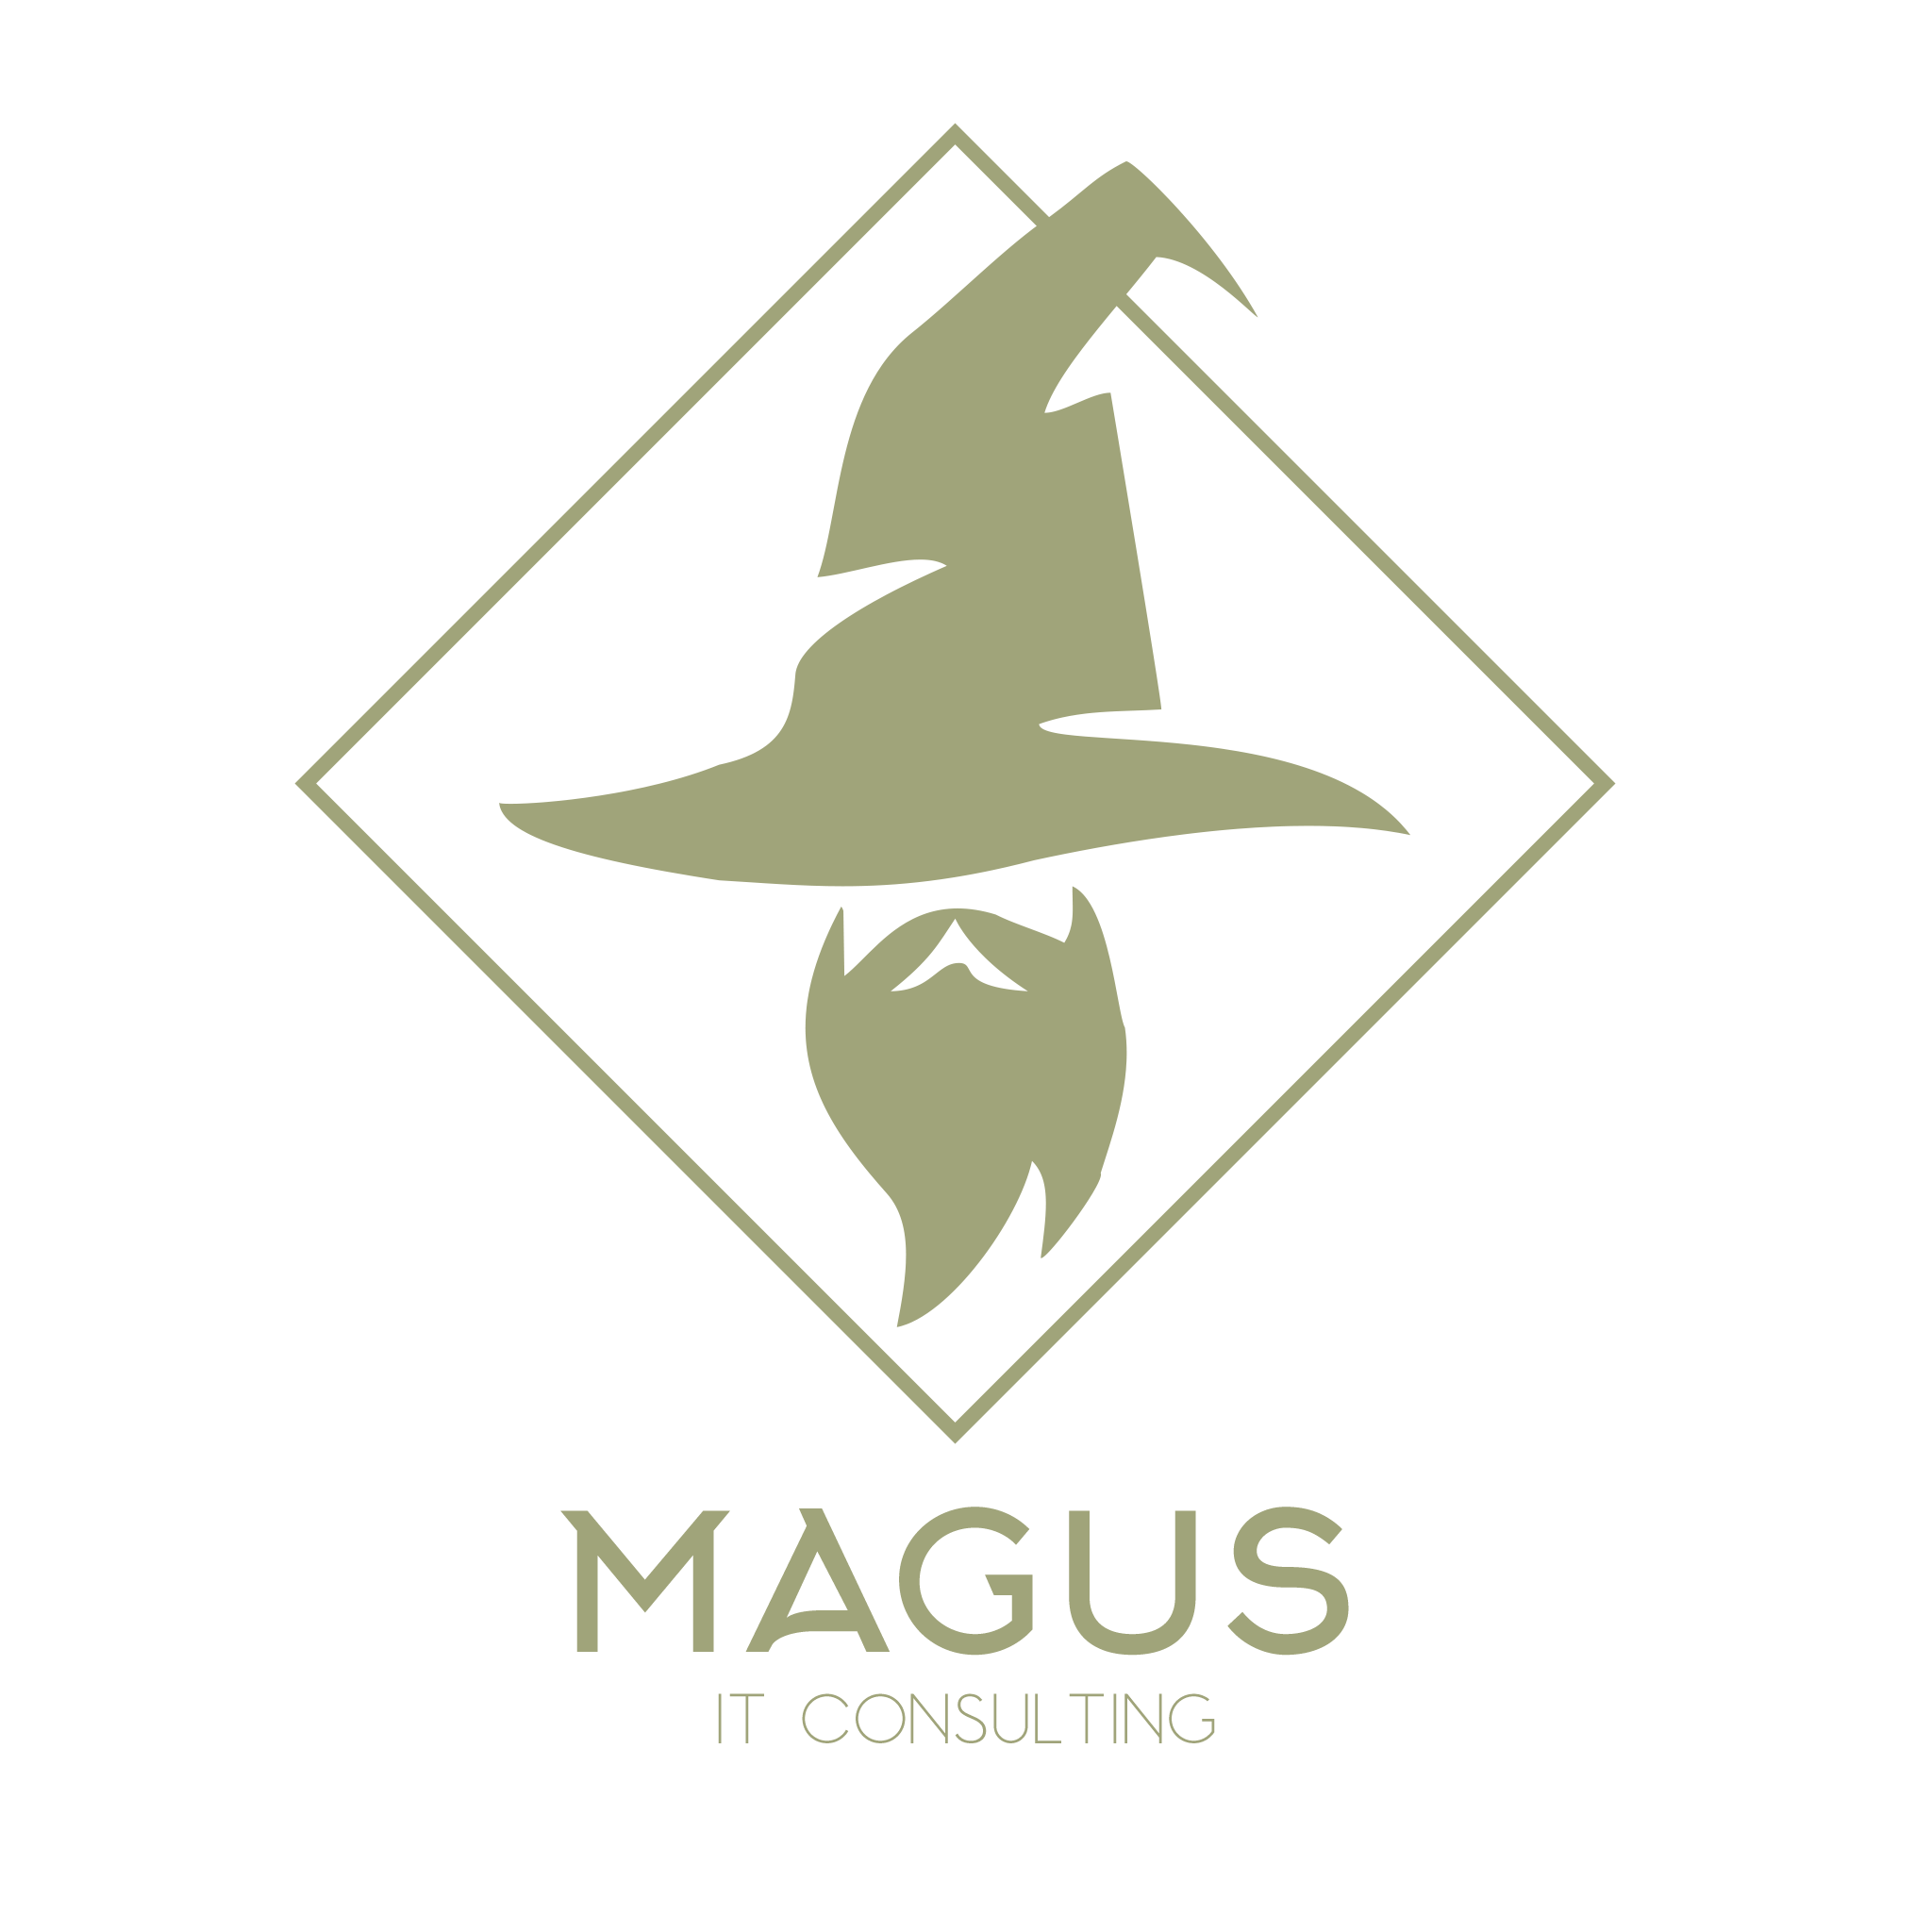 Magus IT Consulting